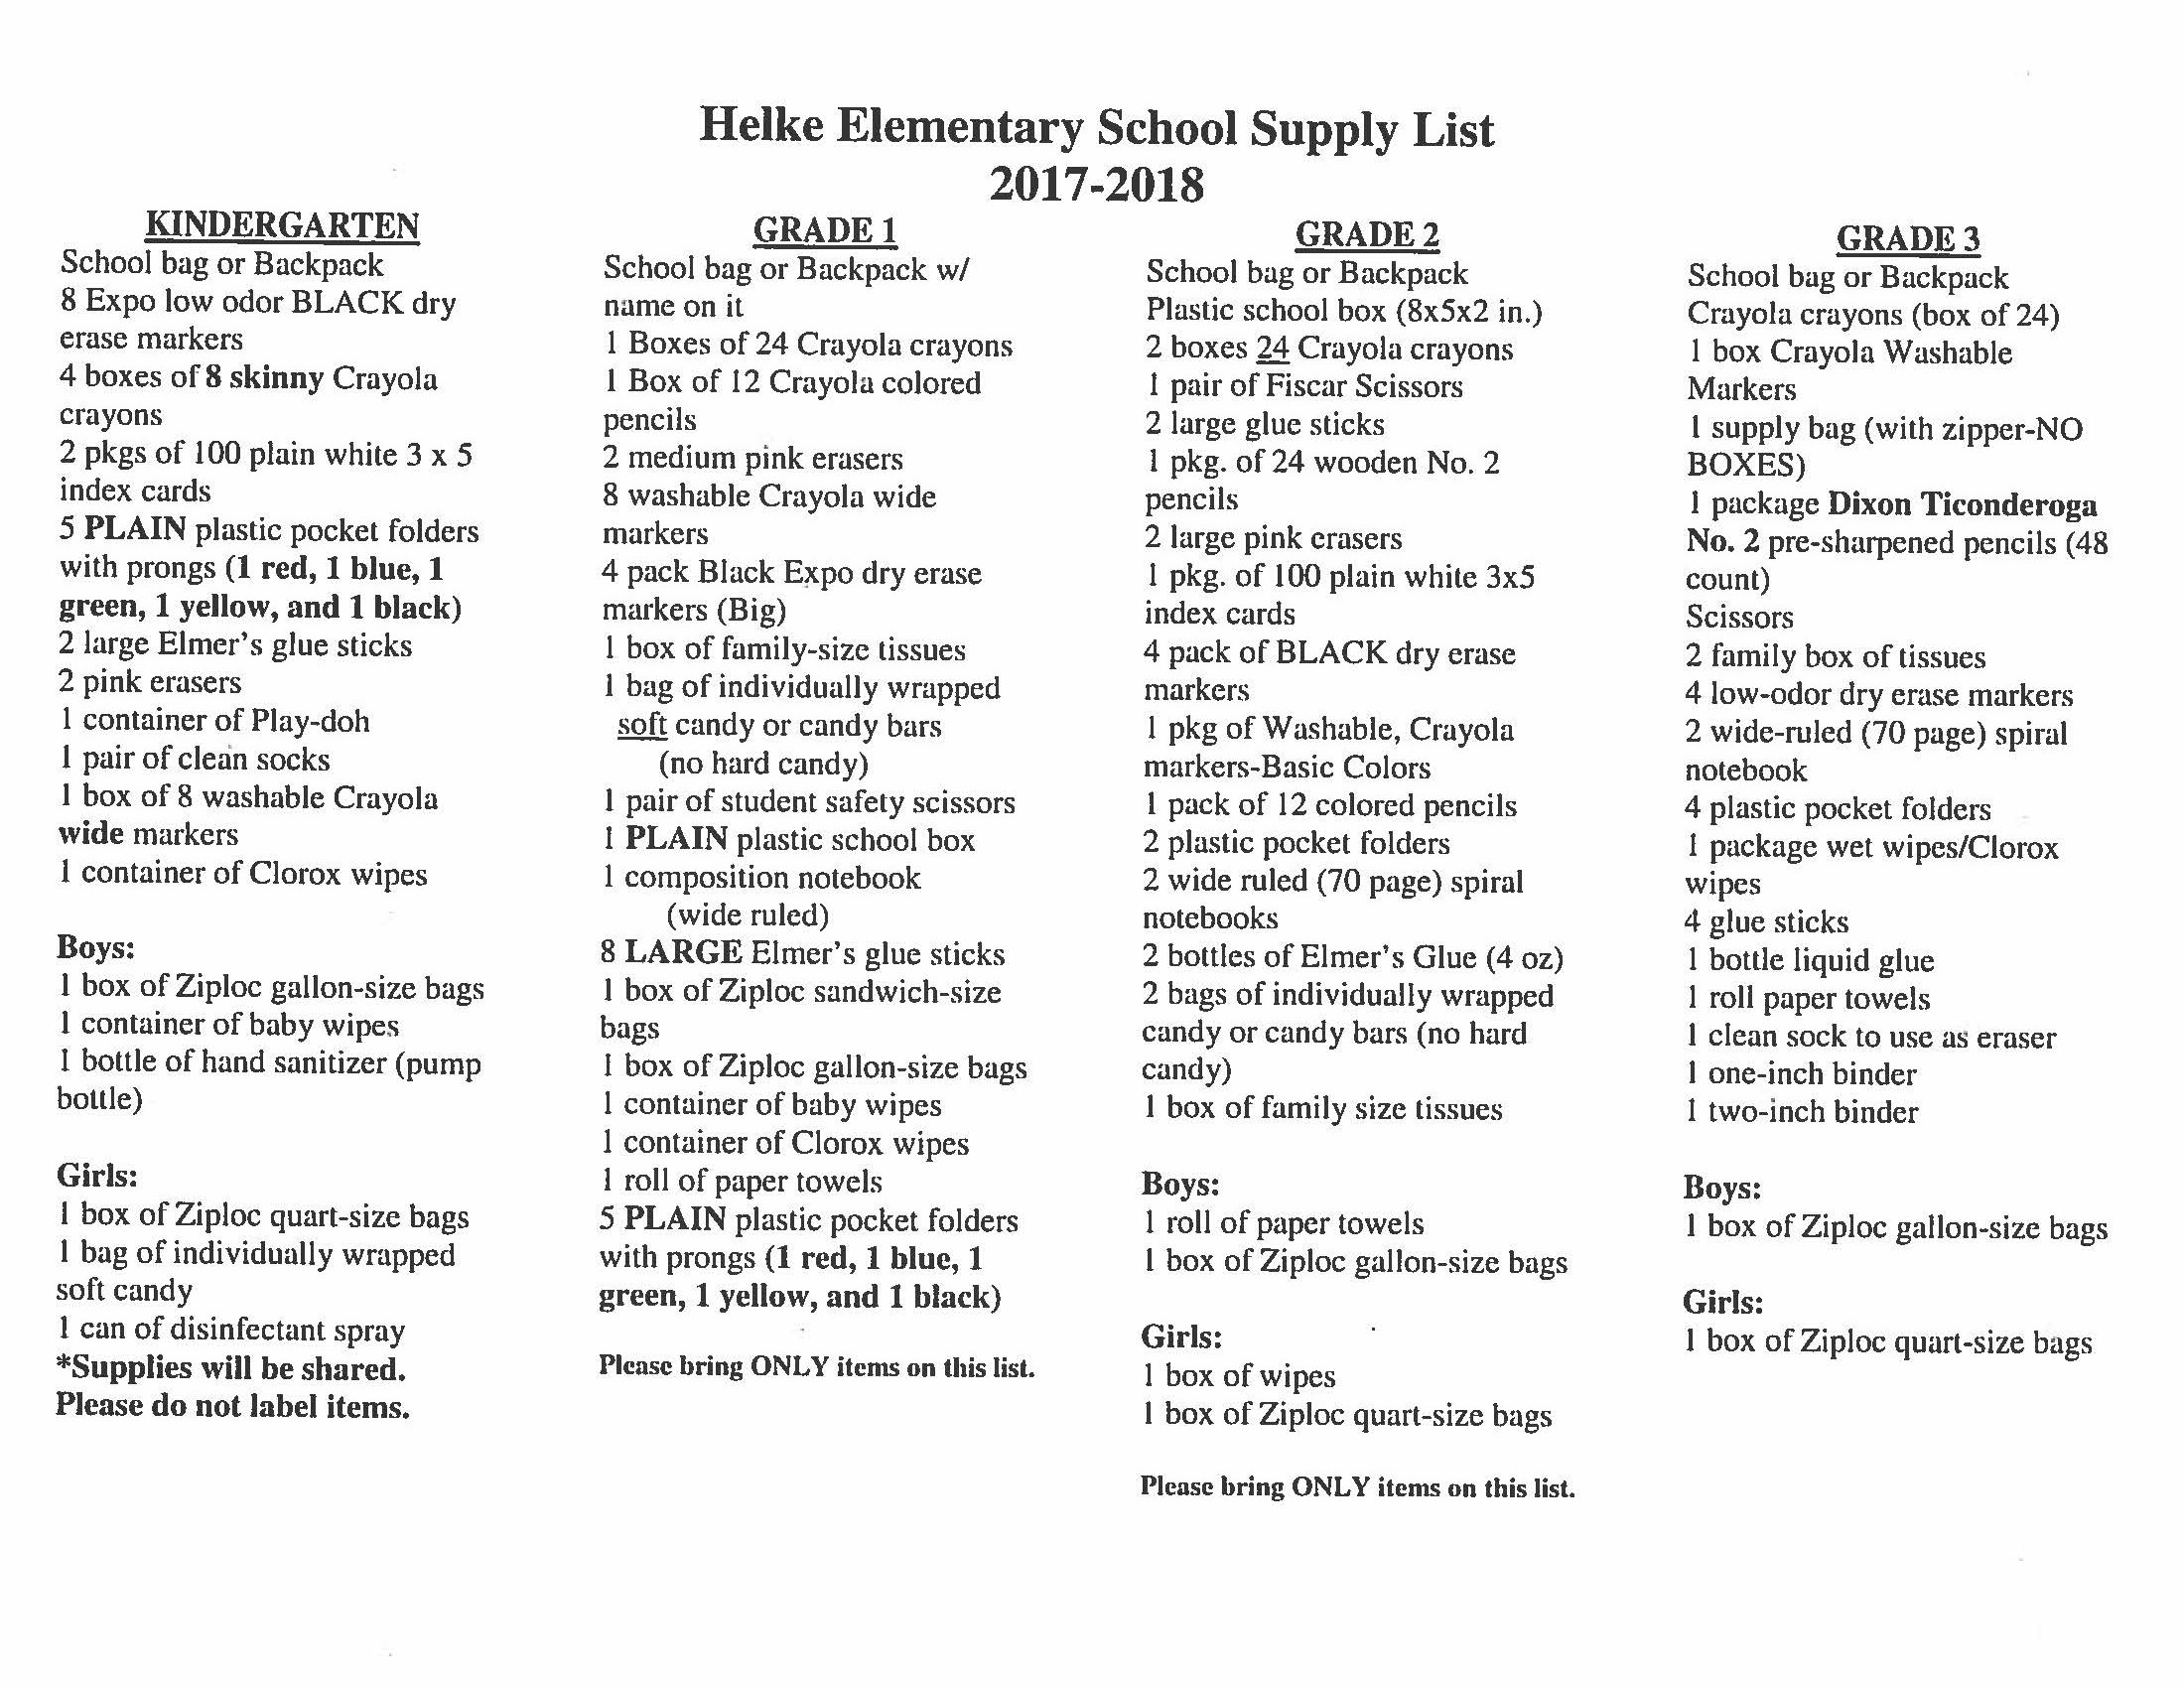 HELKE SUPPLY LIST